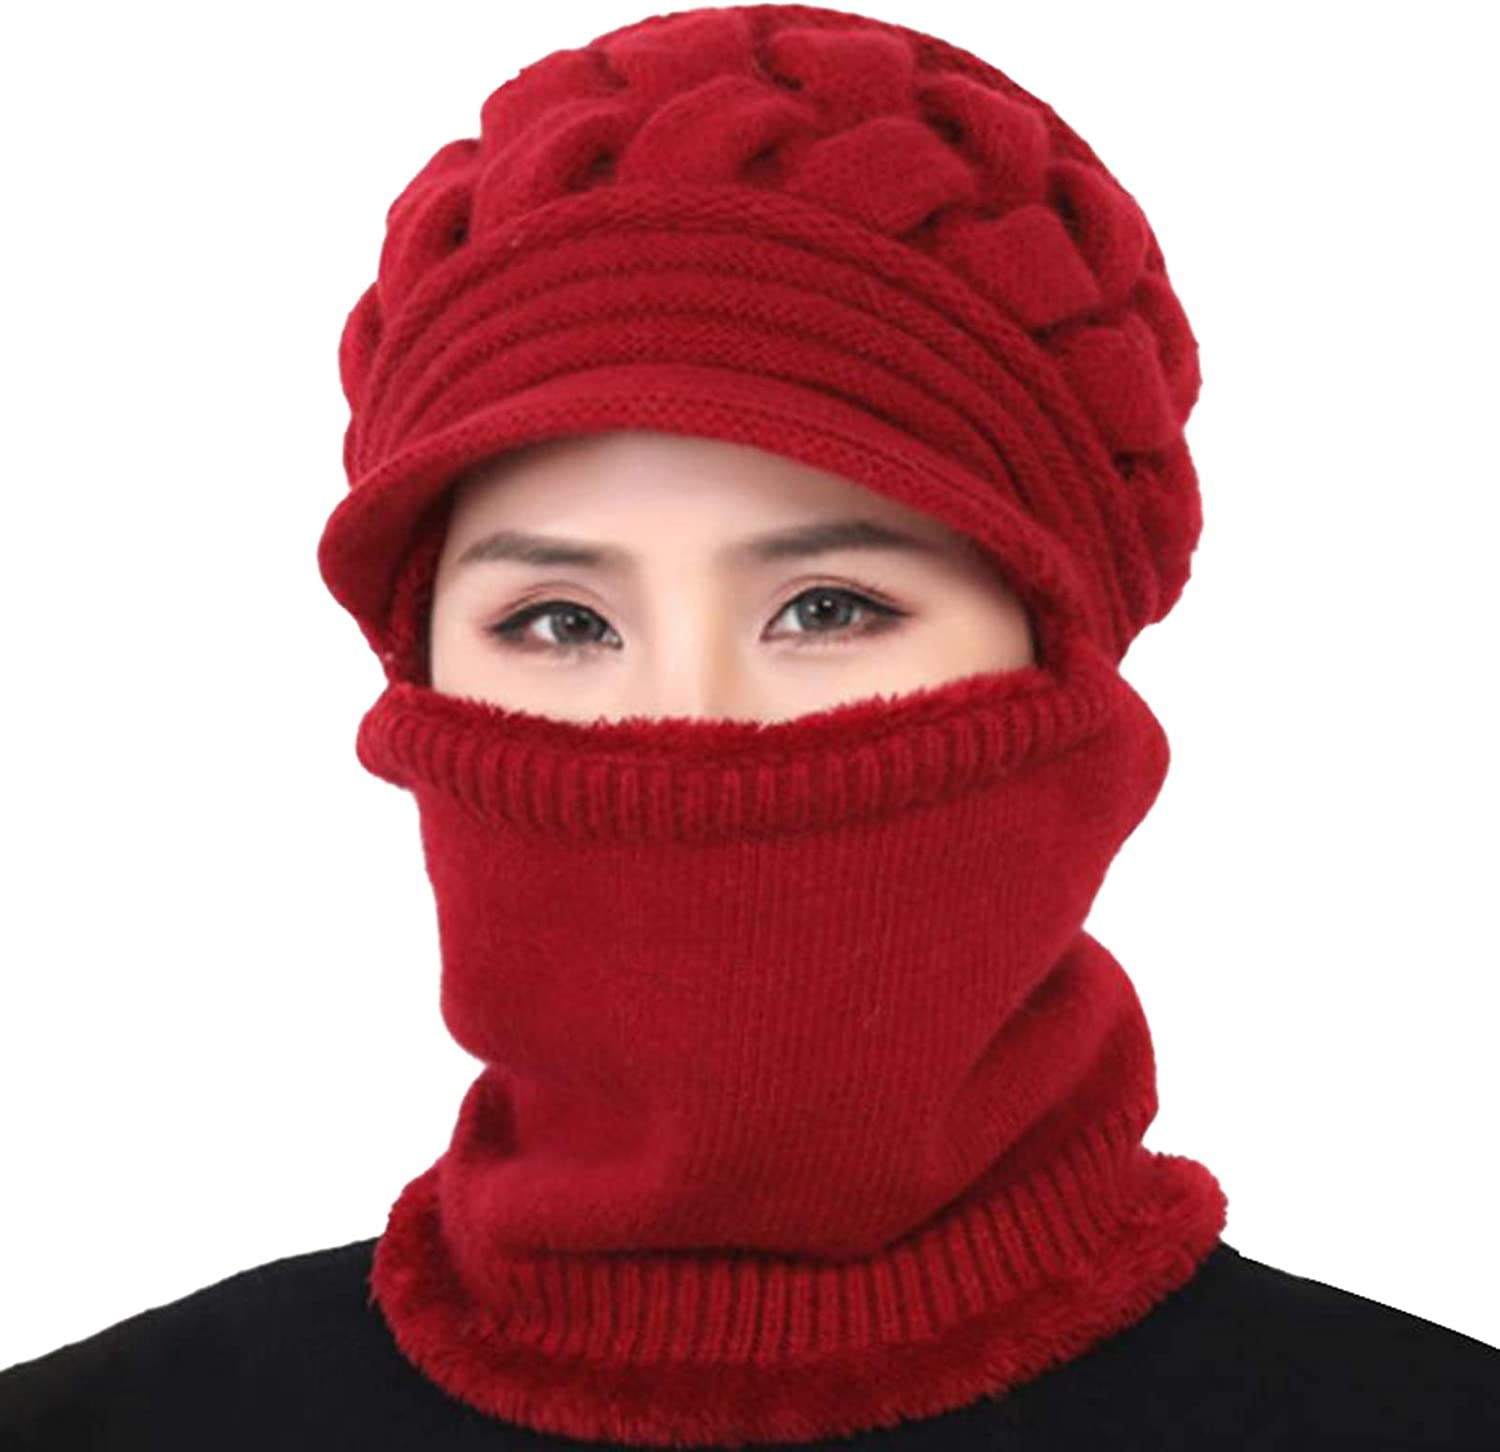 shlutesoy Knitted Hat Scarf Set,Women Winter Knitted Windproof Warm Beanie Cap Neck Gaiter Hat Scarf Gift Set Red